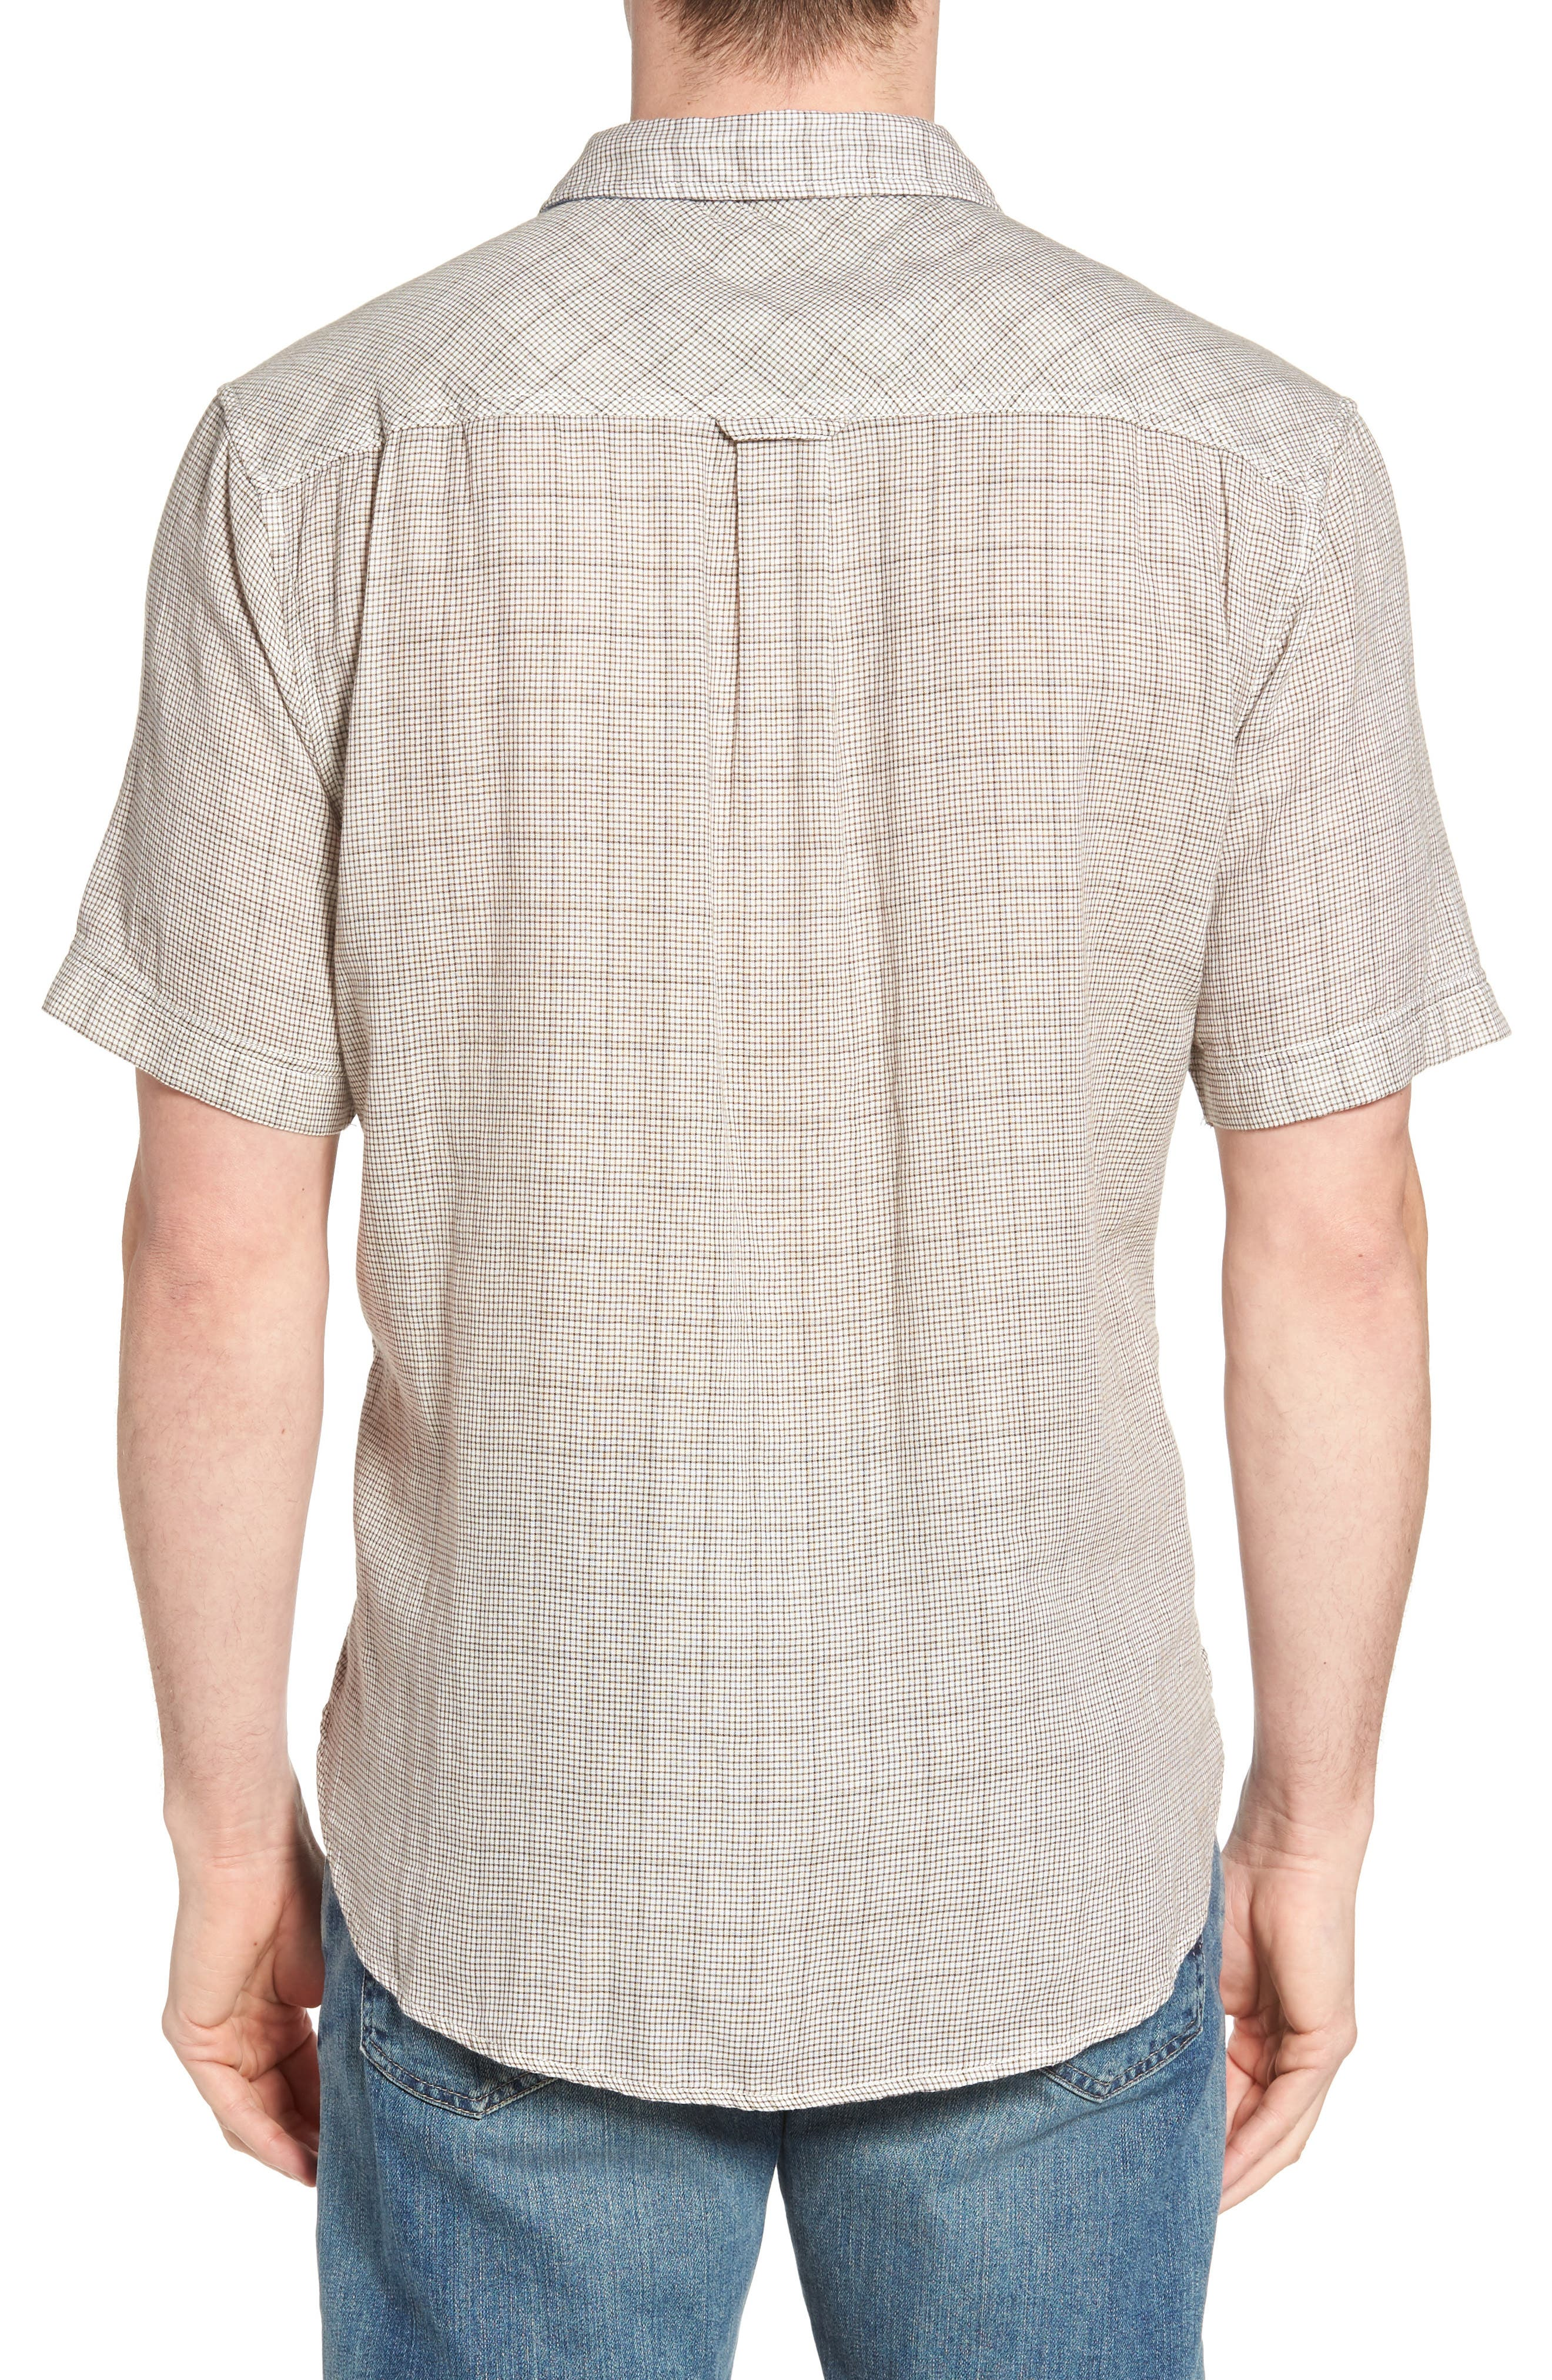 Crossroads Check Sport Shirt,                             Alternate thumbnail 2, color,                             Brown